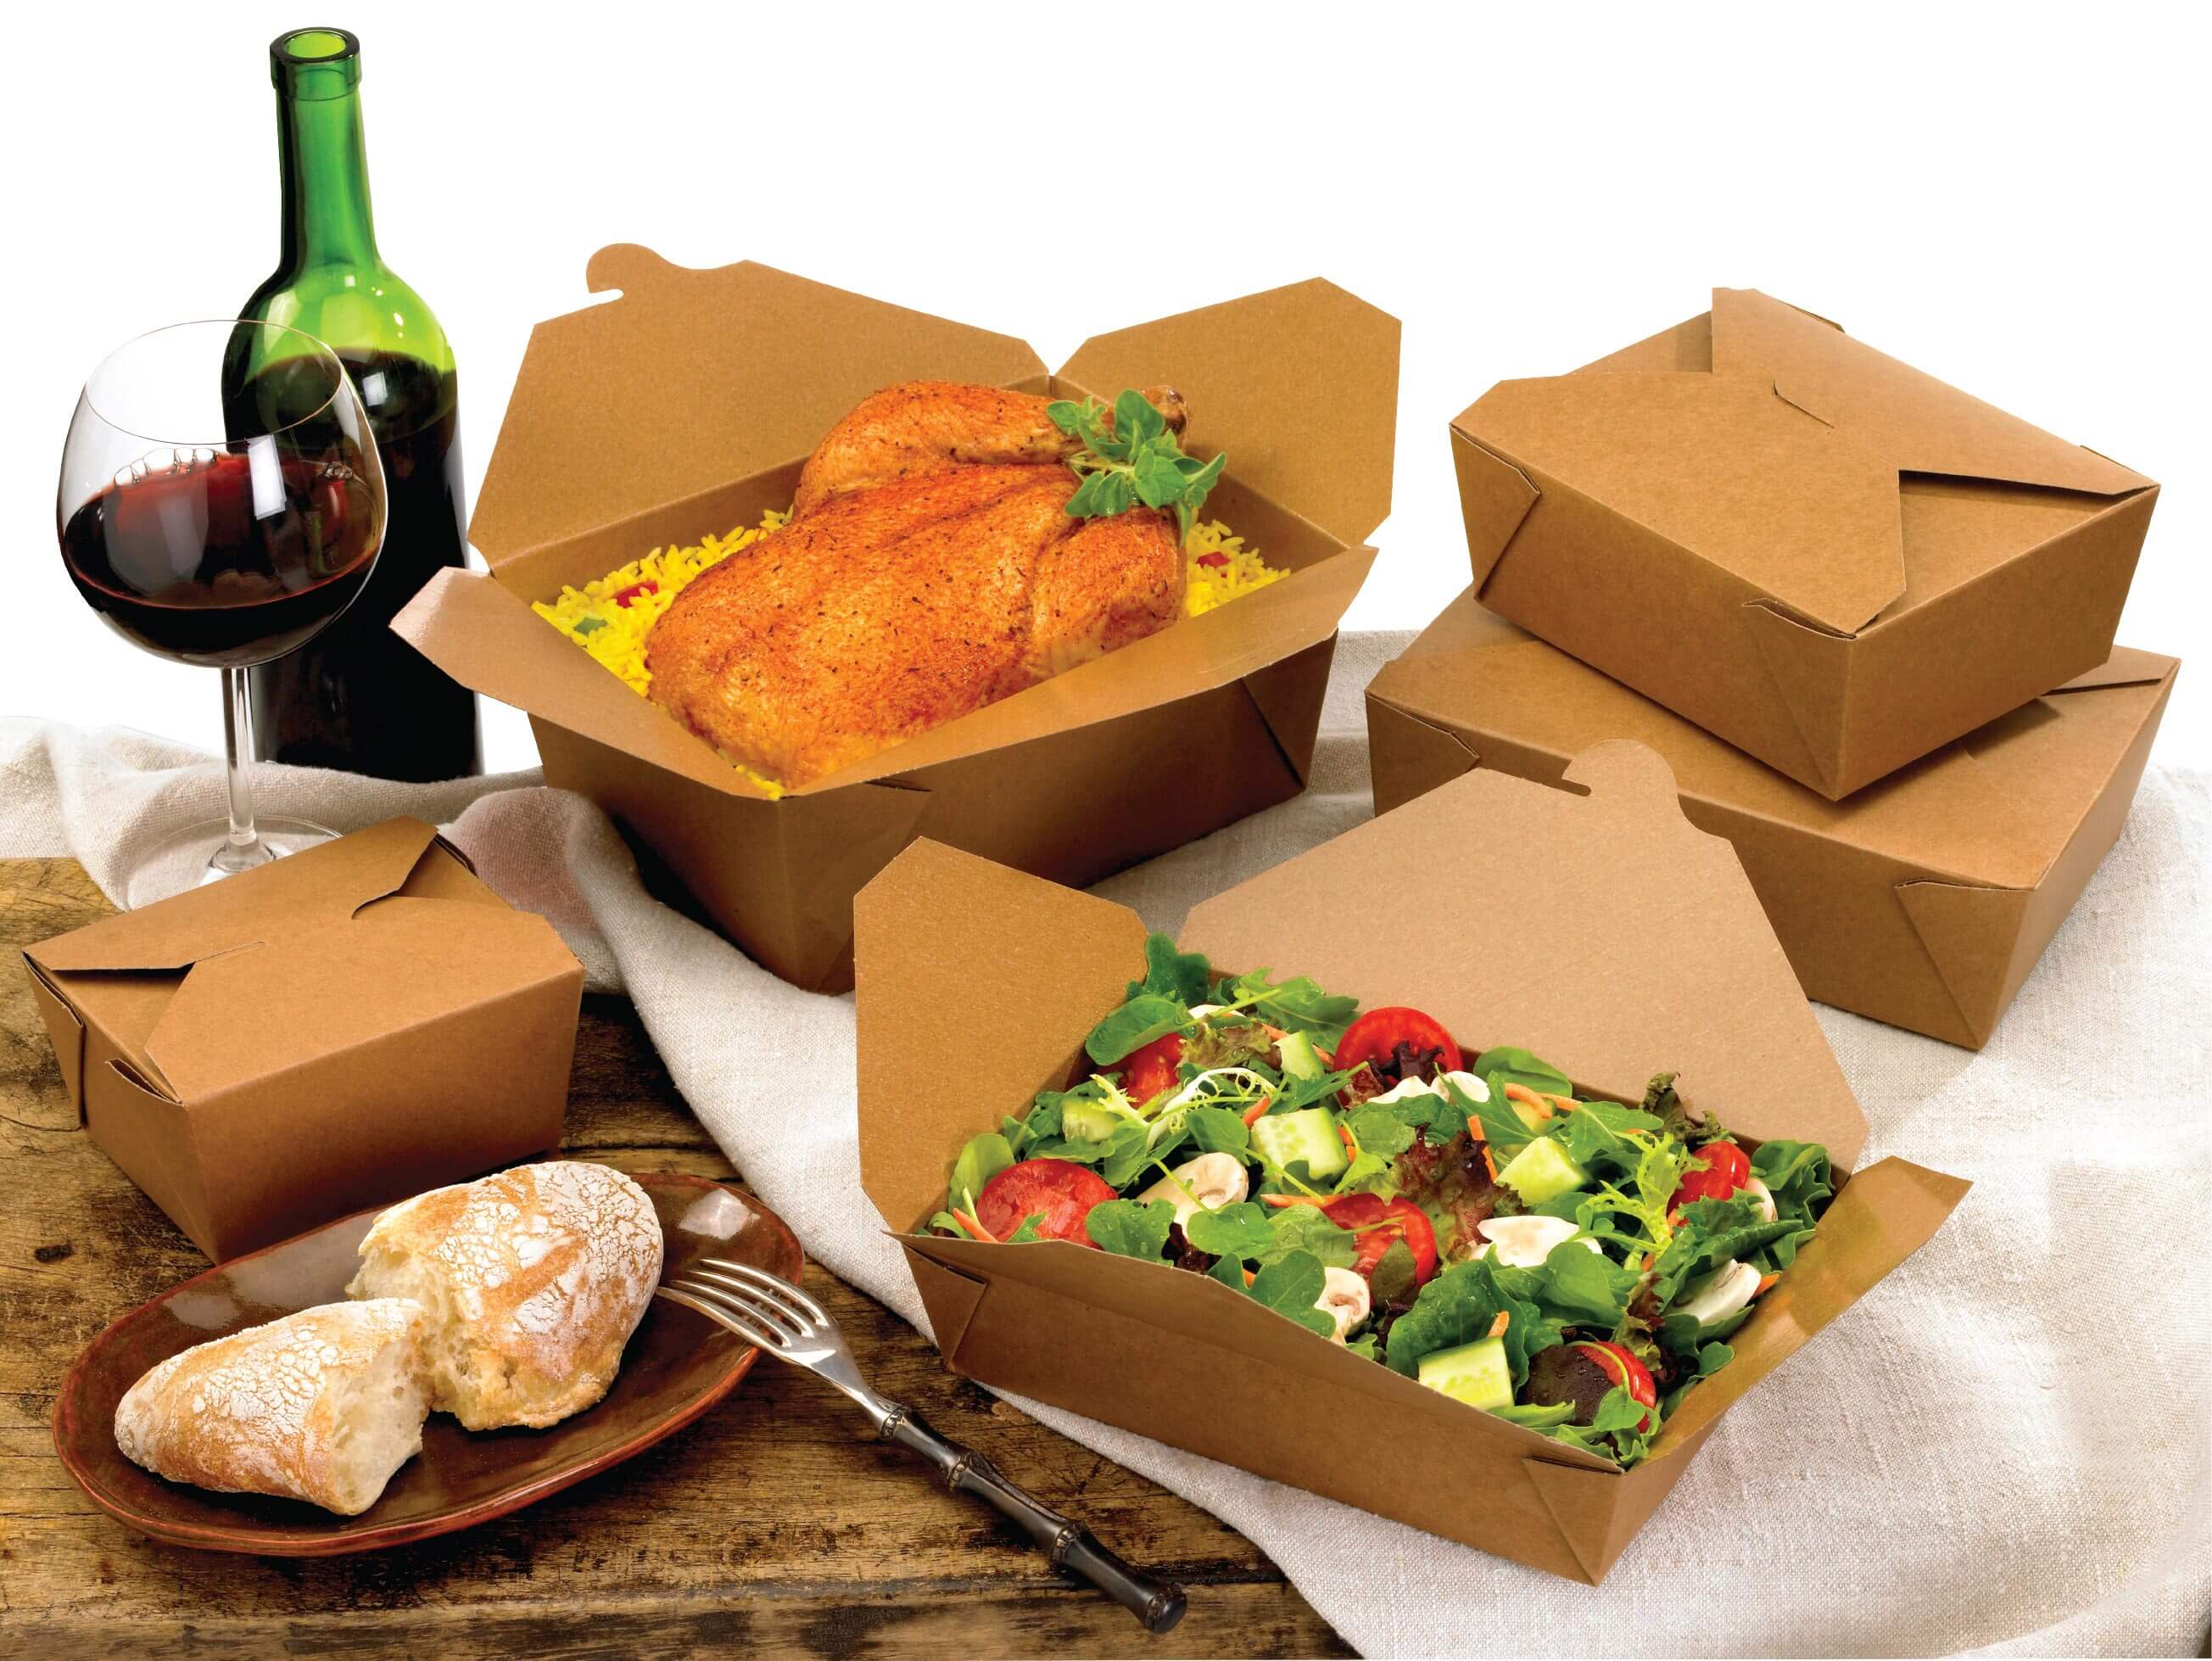 A group shot of Bio-Plus Terra II folding carton containers holding chicken and salad.